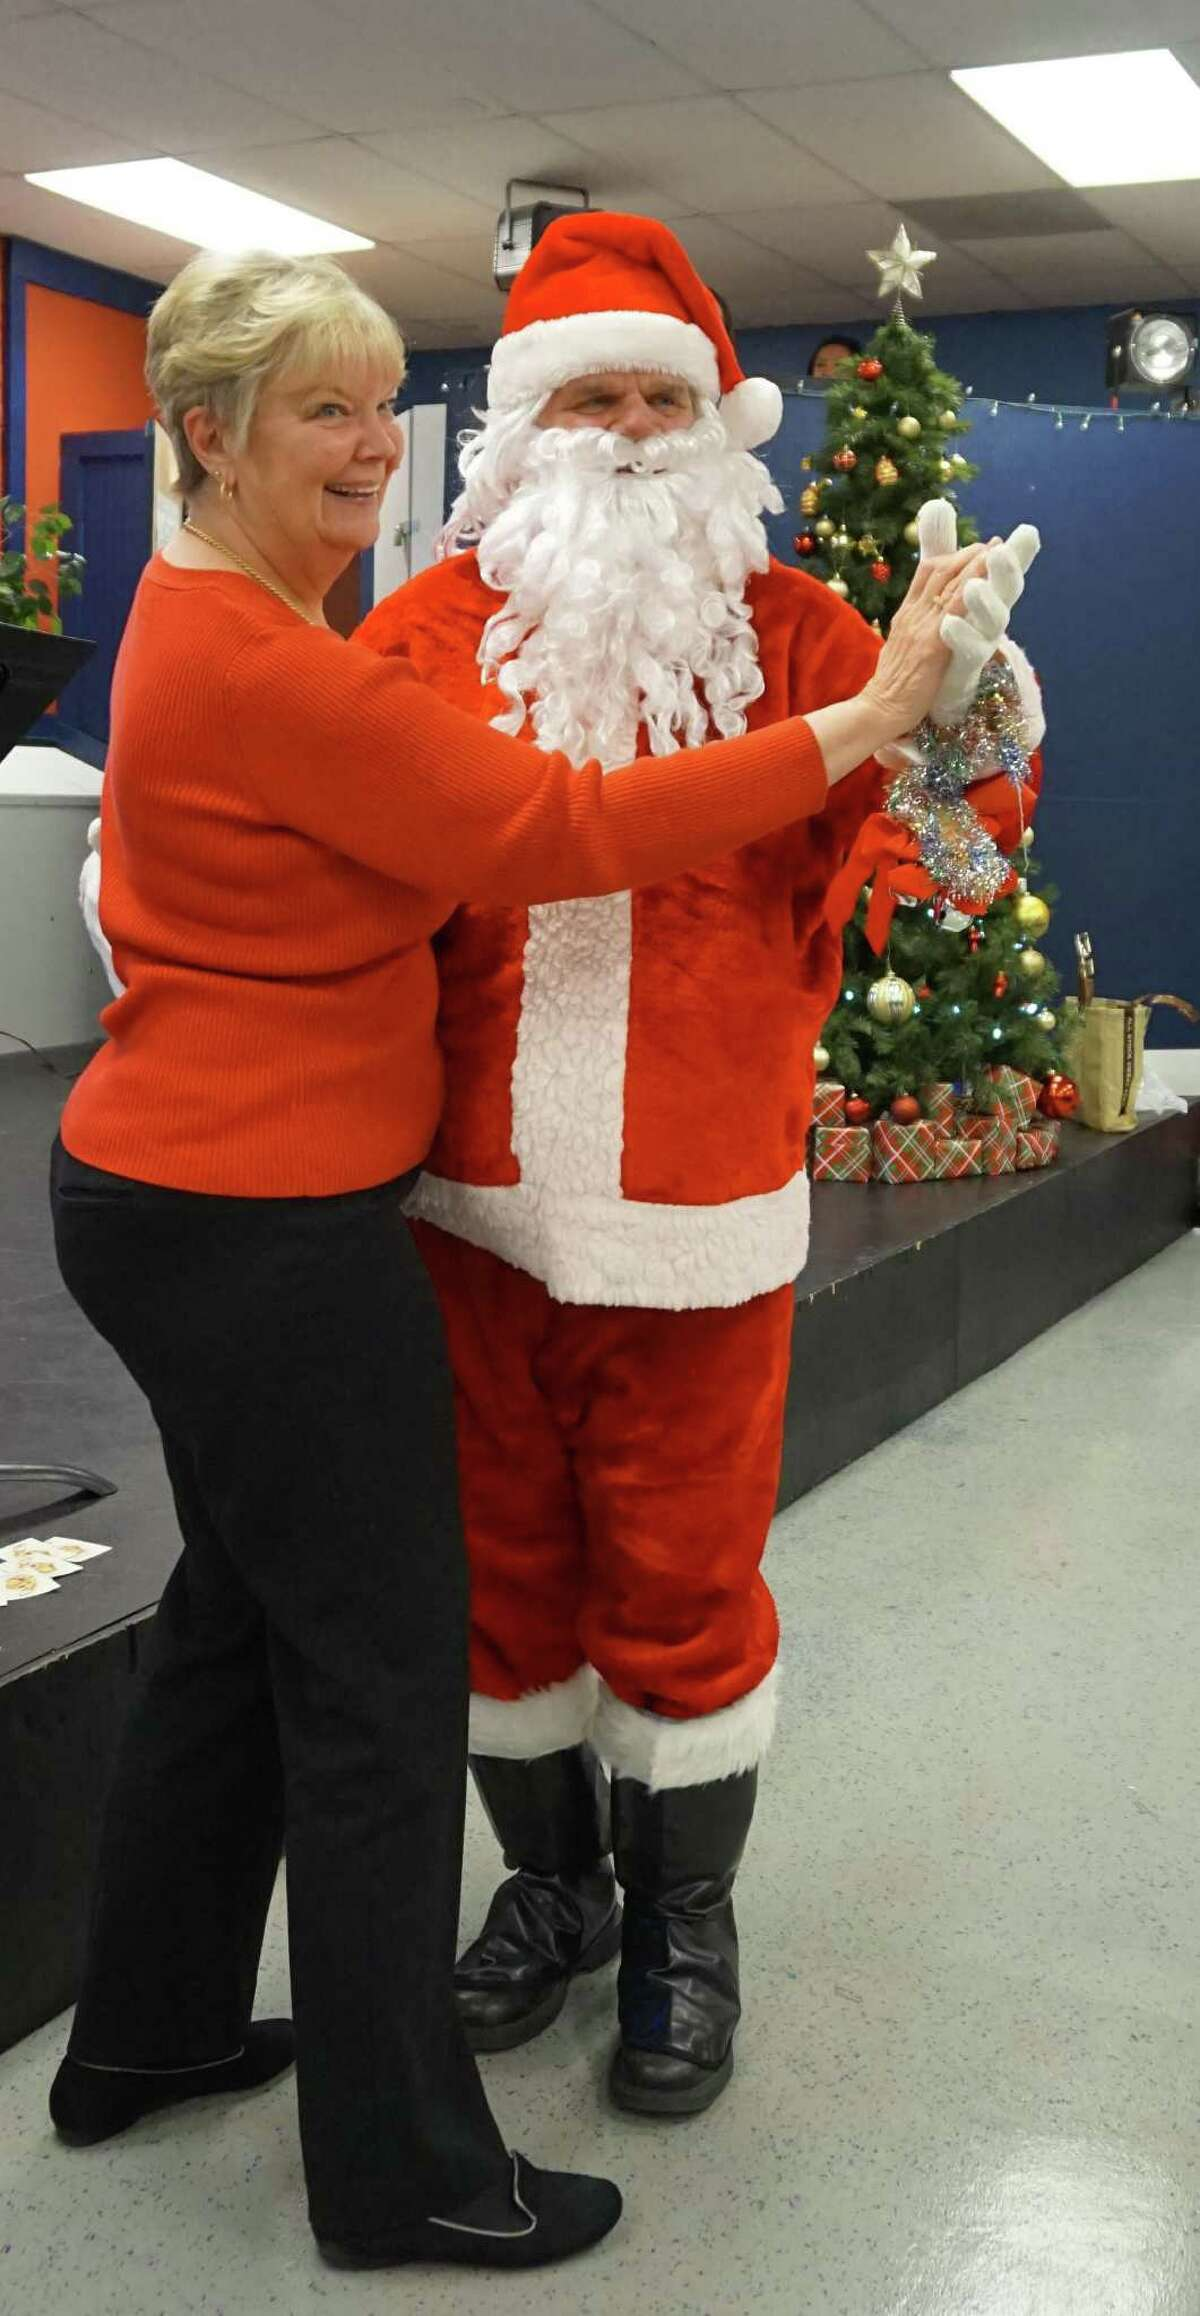 Phyllis Scarpone takes to the floor for a dance with Santa, a task she chose in order to win her door prize at the New Milford Senior Center's holiday celebration held earlier this month at The Maxx in New Milford.